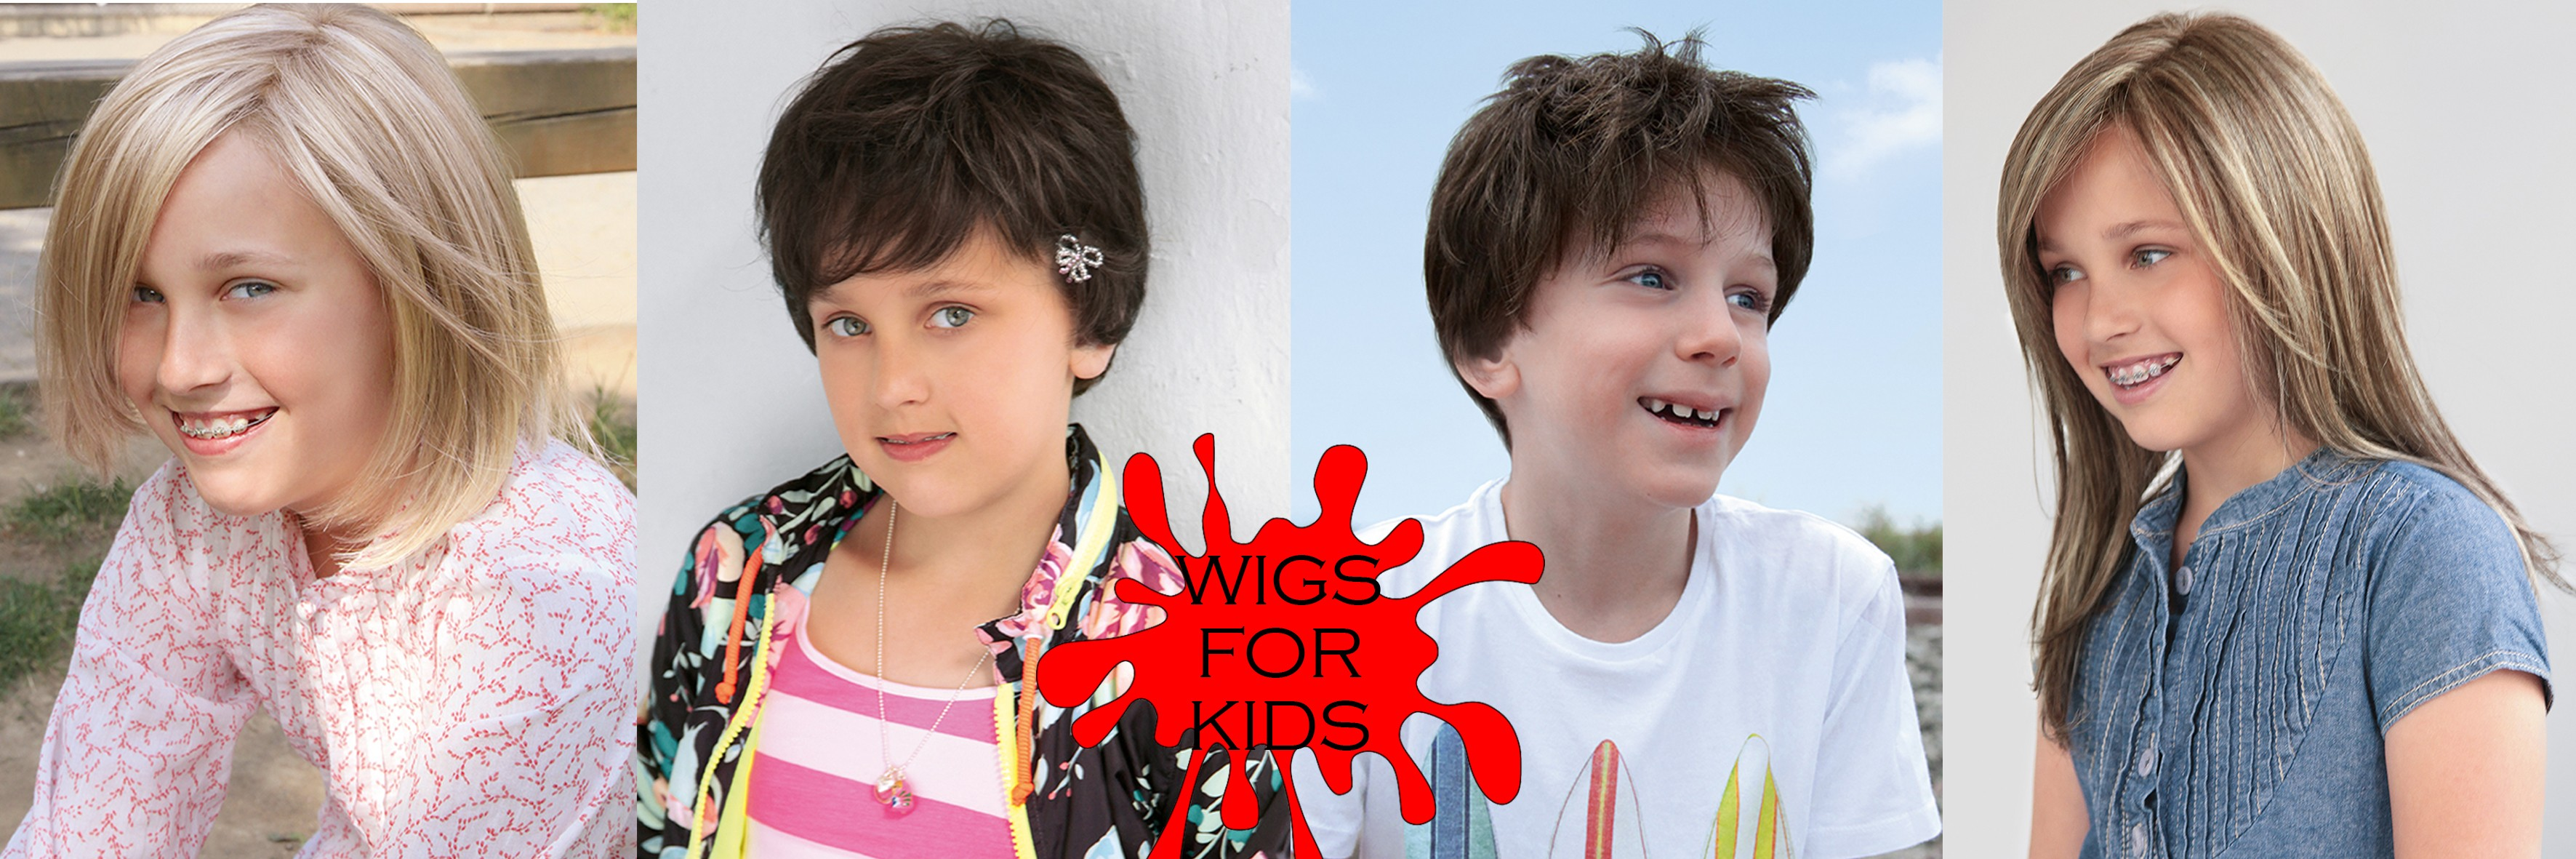 WIGS FOR KIDS - Parrucche per Bambini